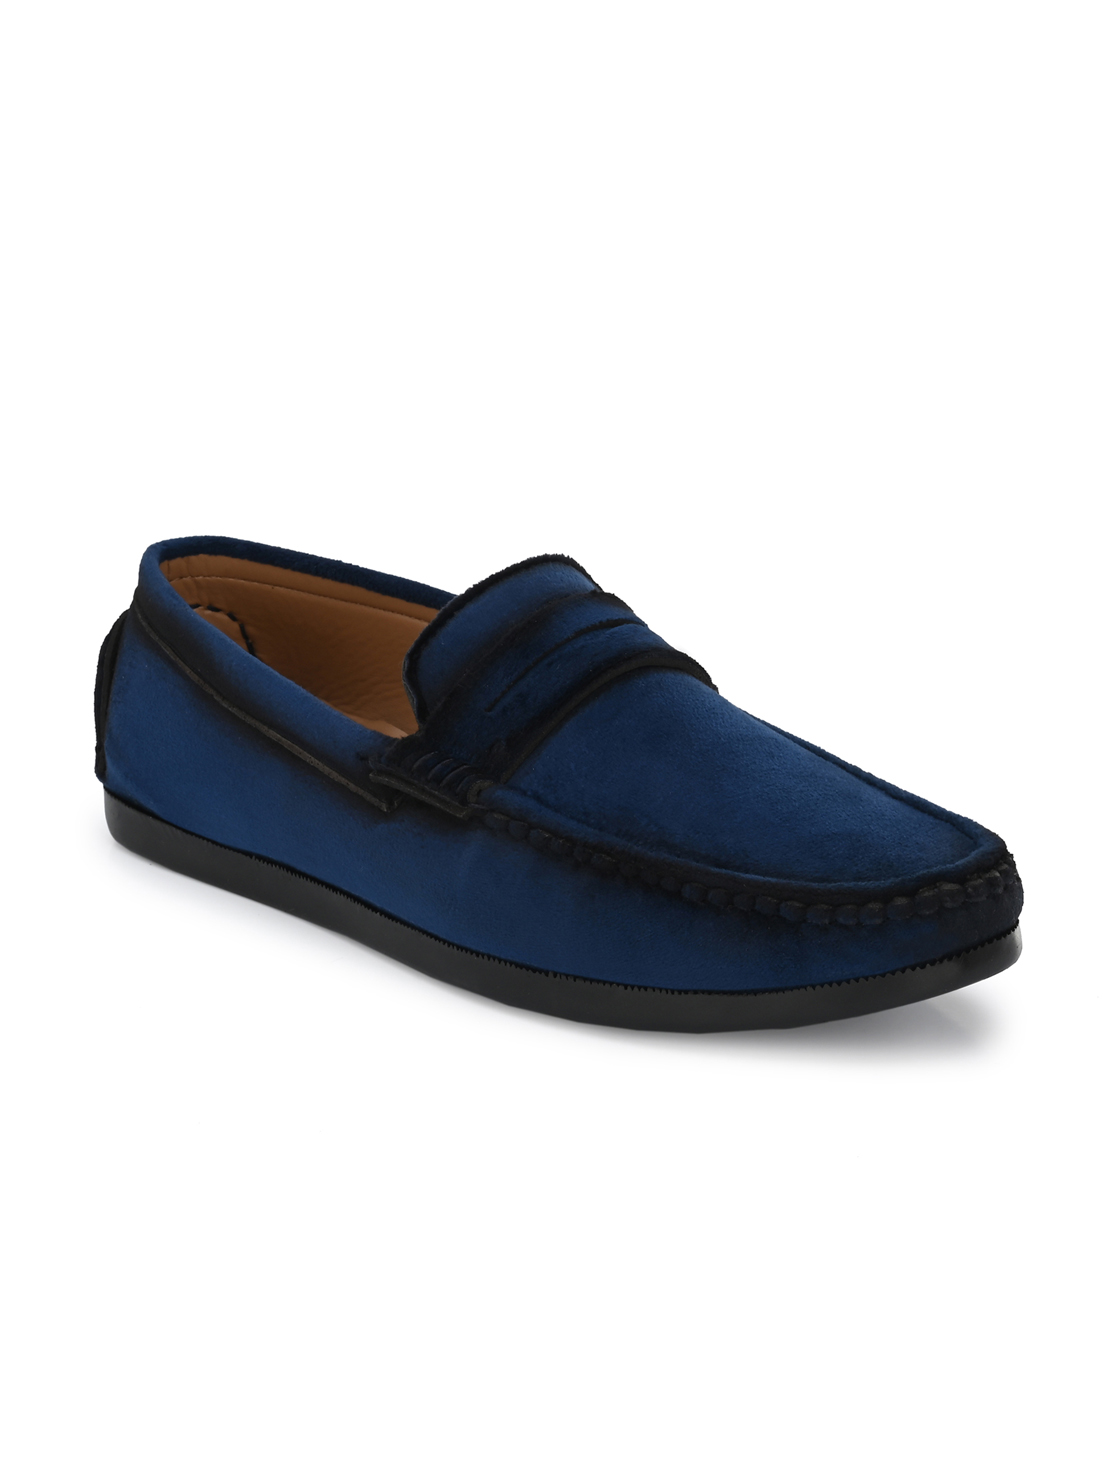 Guava   Guava Charming Velvet Casual Loafer Shoes - Blue